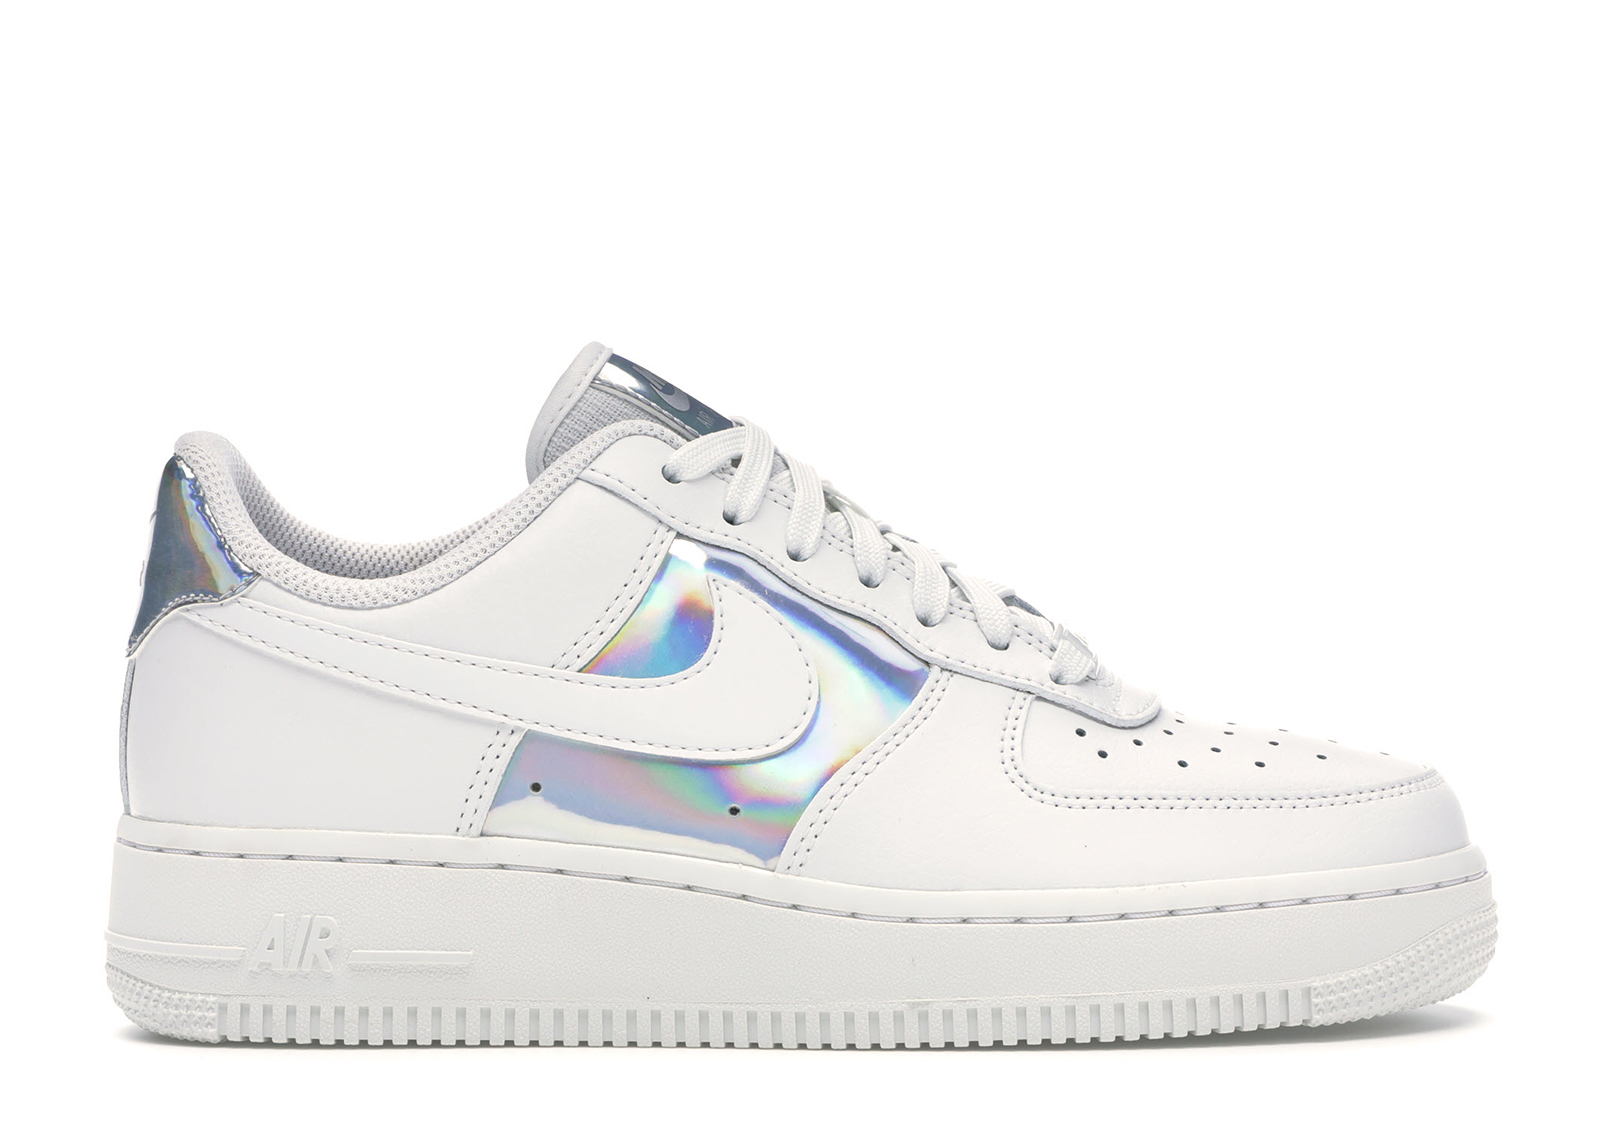 Nike Air Force 1 Low Iridescent White